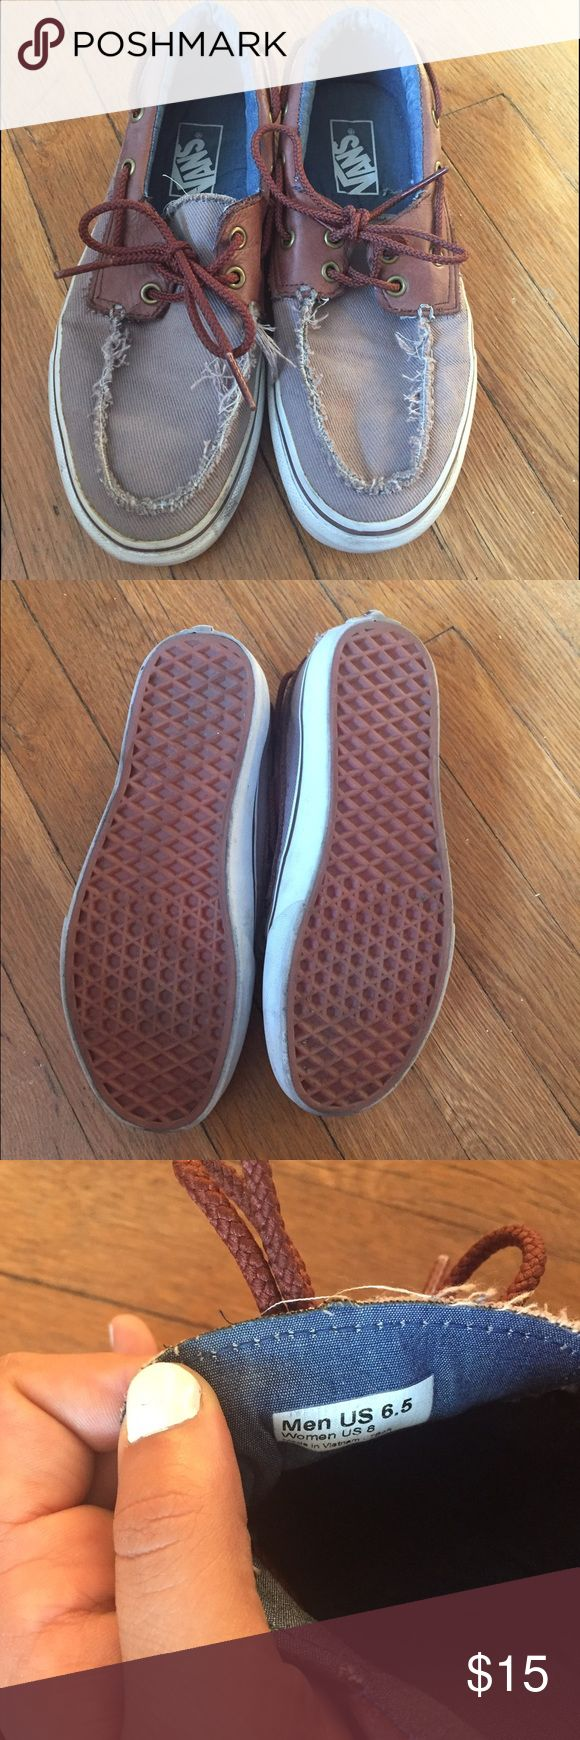 Vans boat shoes like new size 8 Super cute vans boat shoes. Grey with brown leather. Extremely good condition. Vans Shoes Sneakers